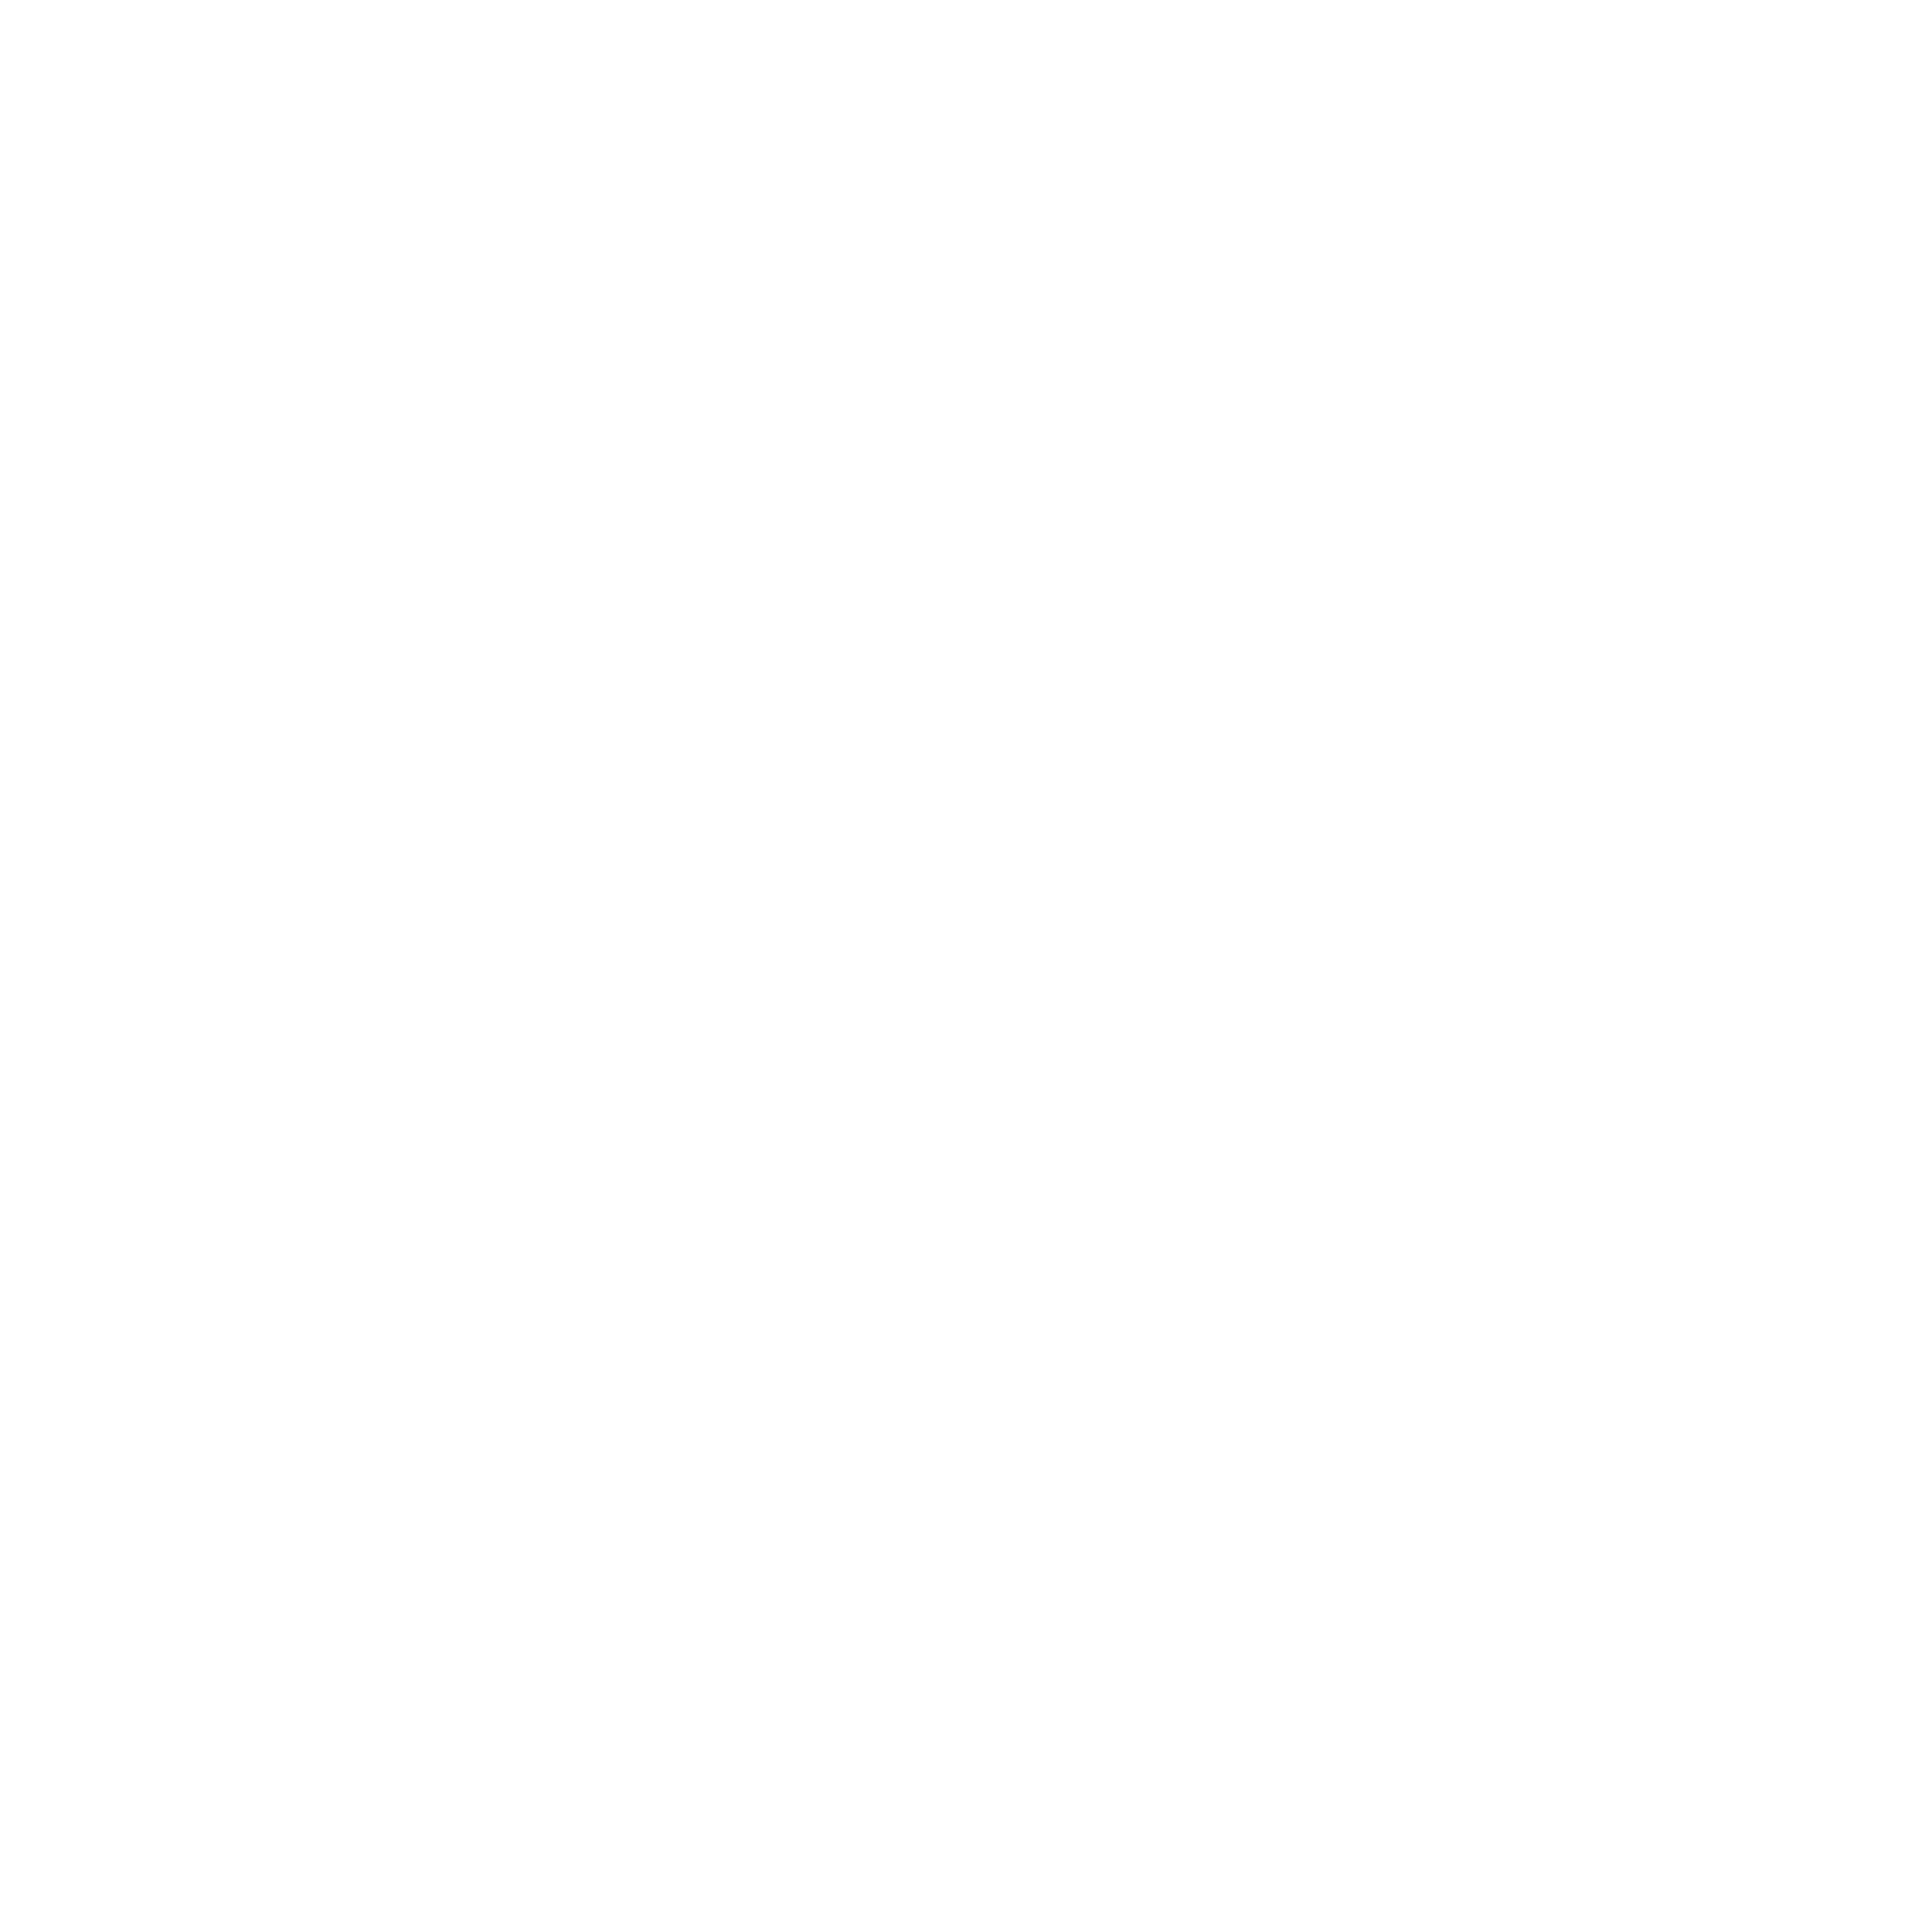 Bootcamp graphic